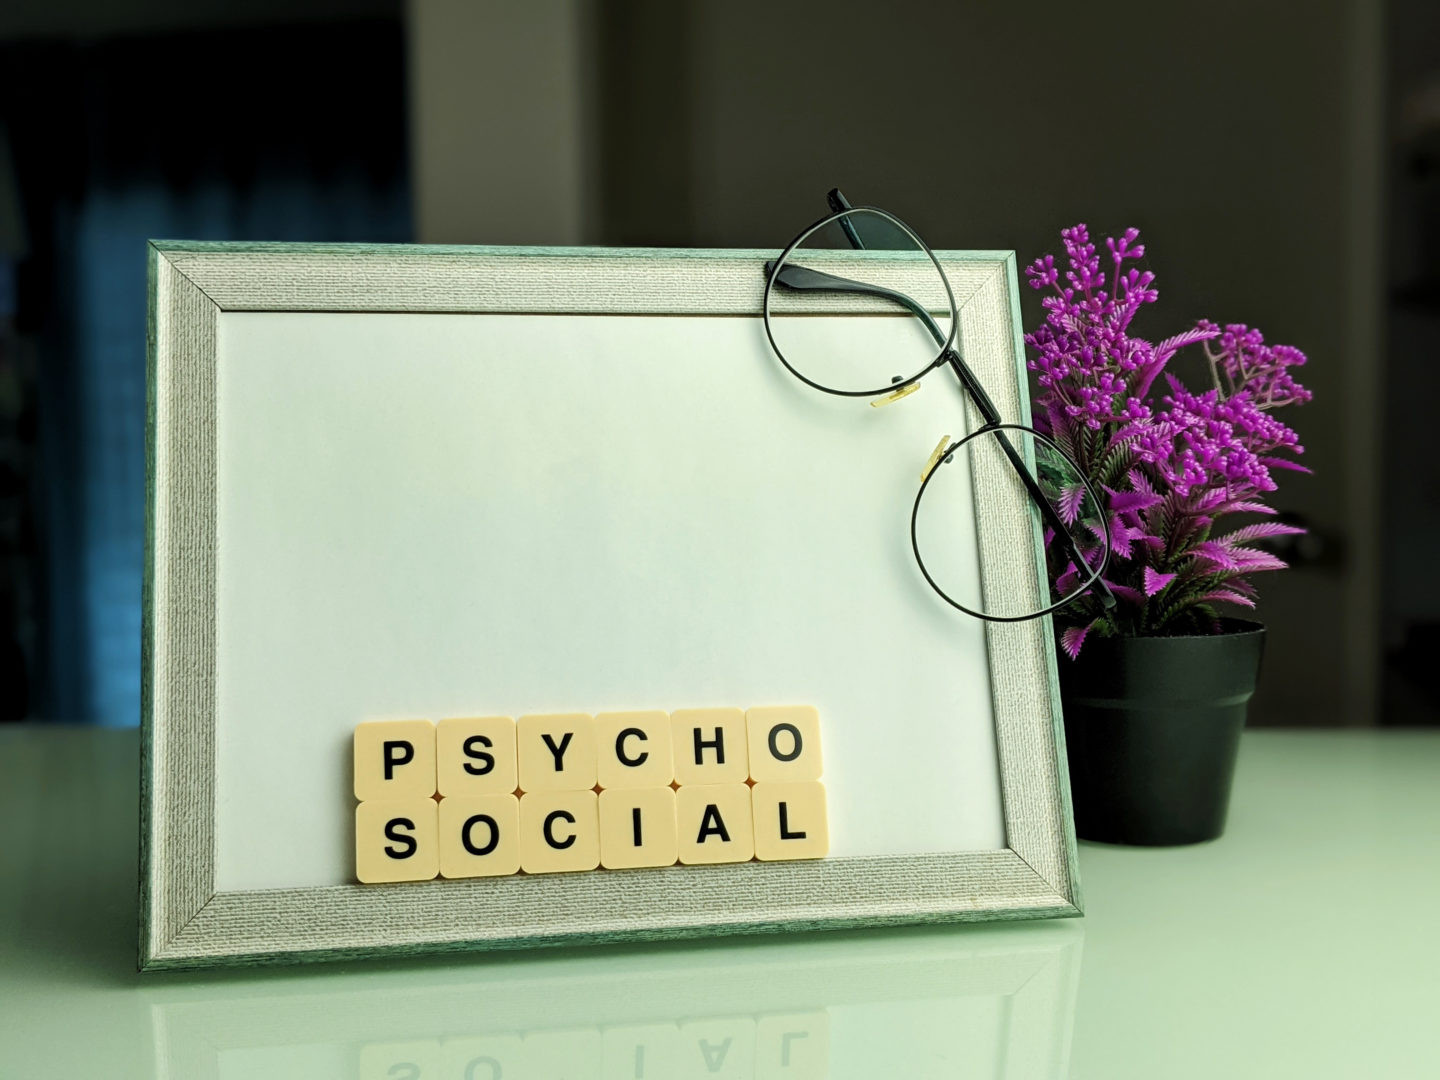 Alphabhet Pyshcosocial in the frame with a blur background